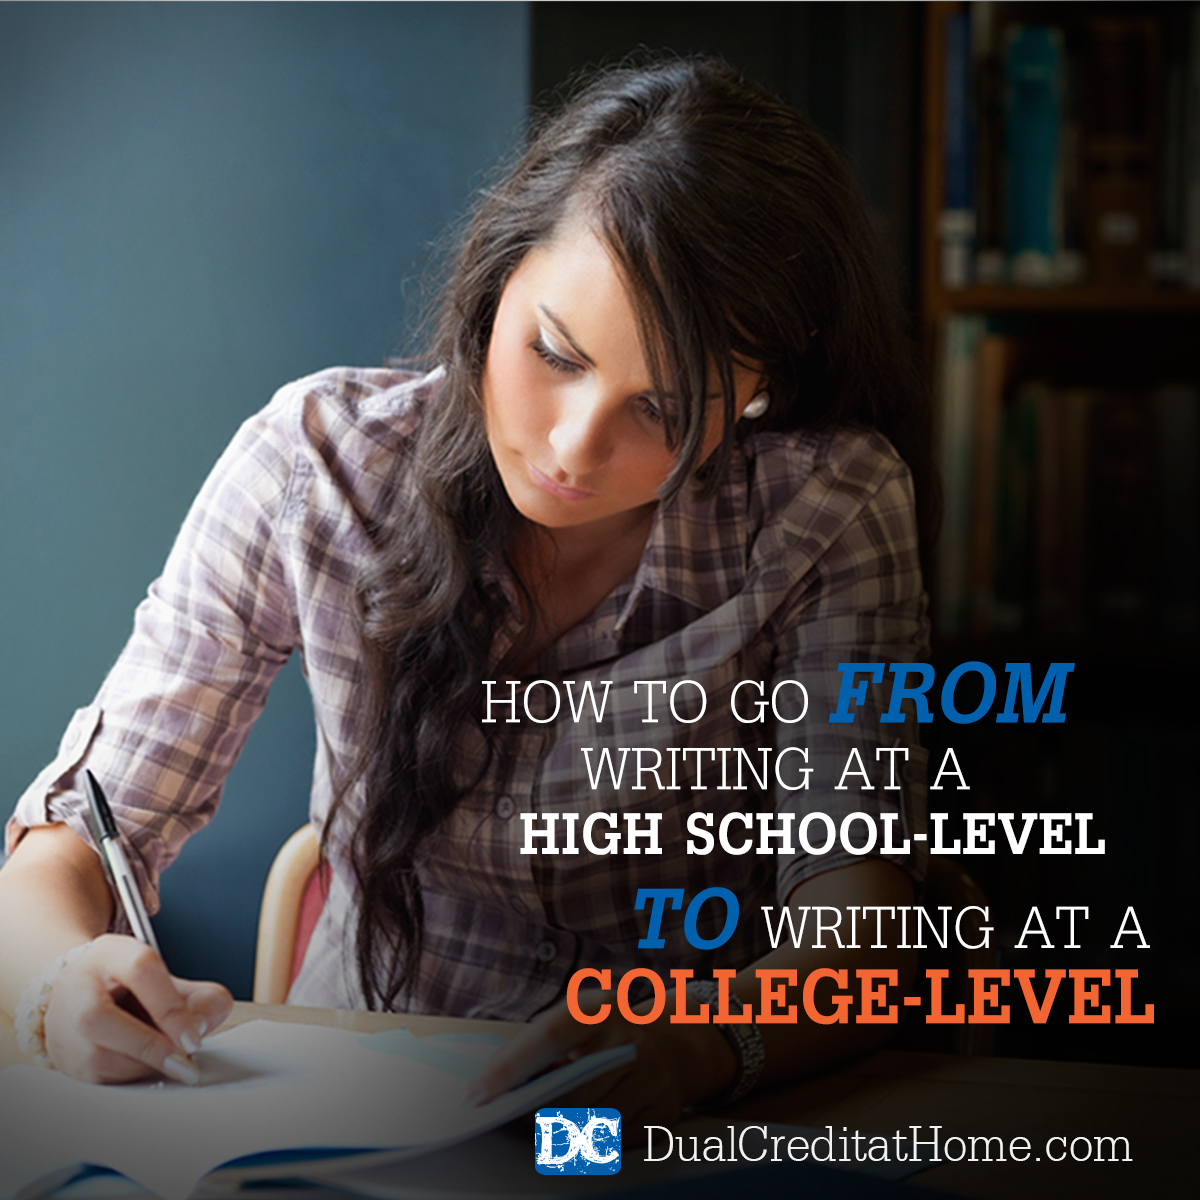 college level writing Online forum discussions and the development of opinions in college-level  esl writing to succeed academically, students must learn how to develop criti.